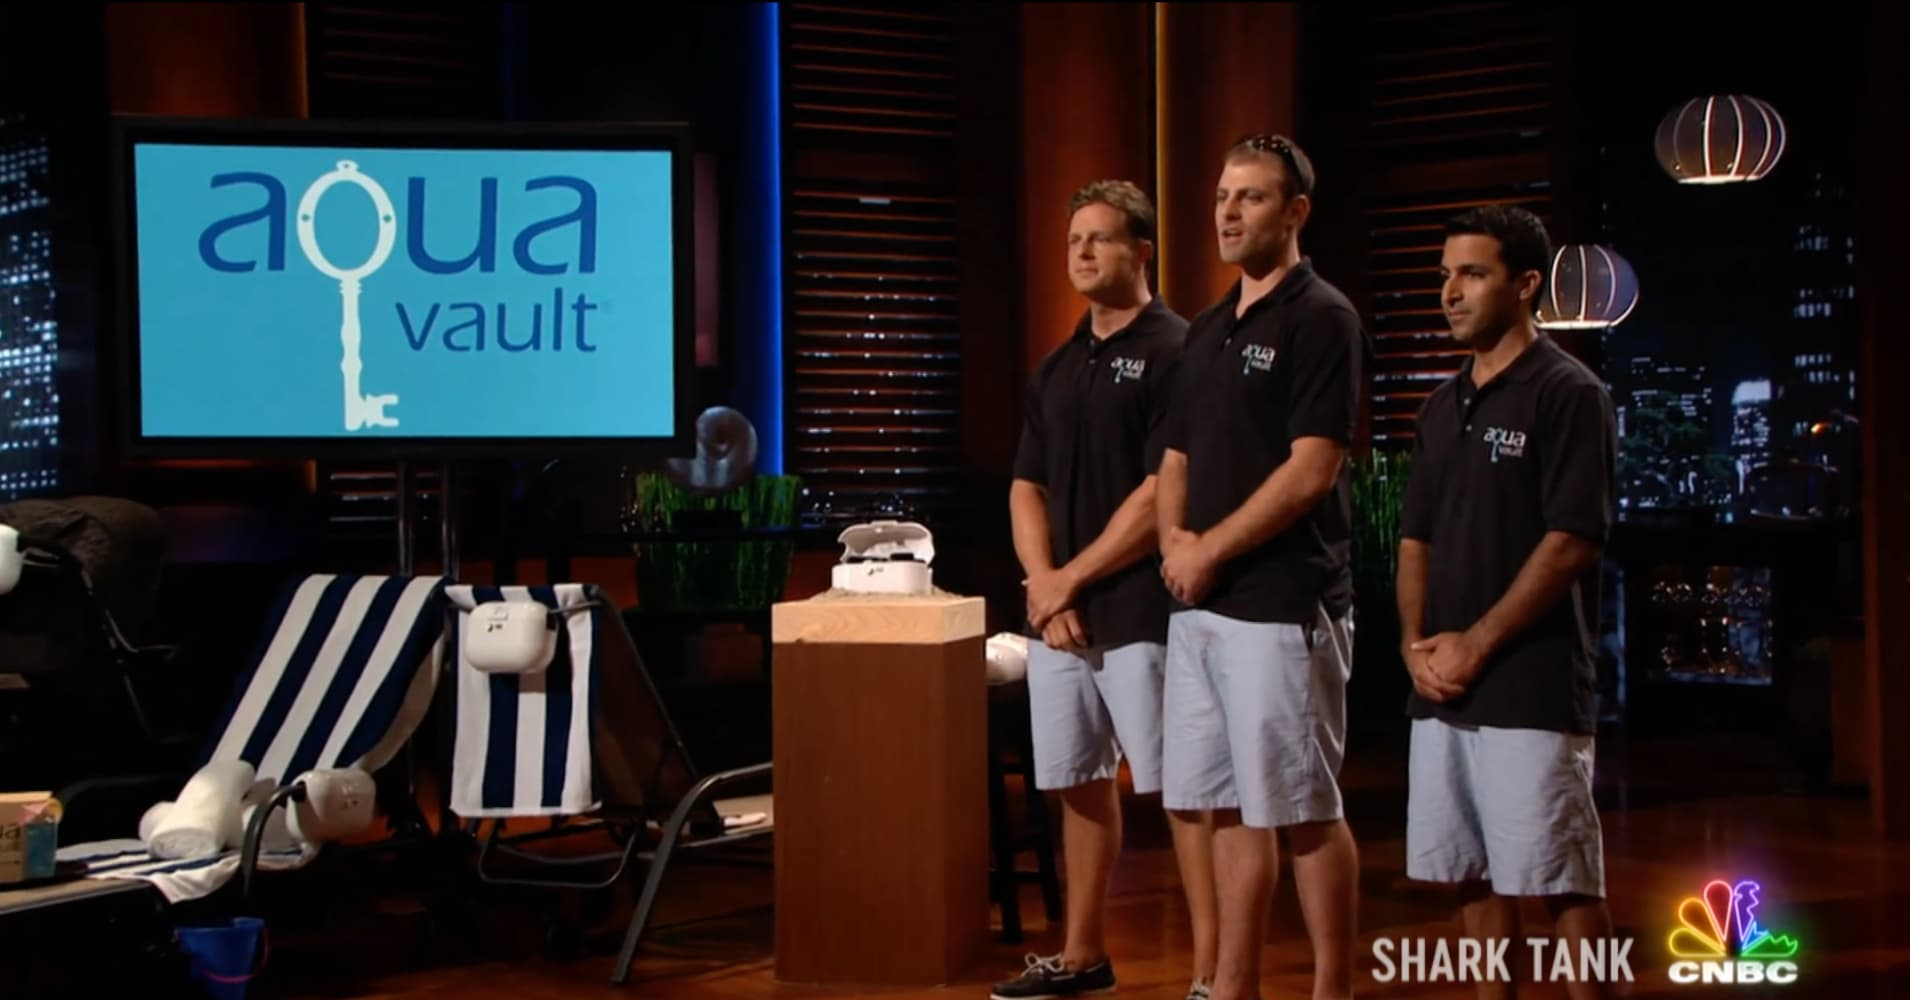 'Shark Tank' hopeful AquaVault helps give vacationers peace of mind